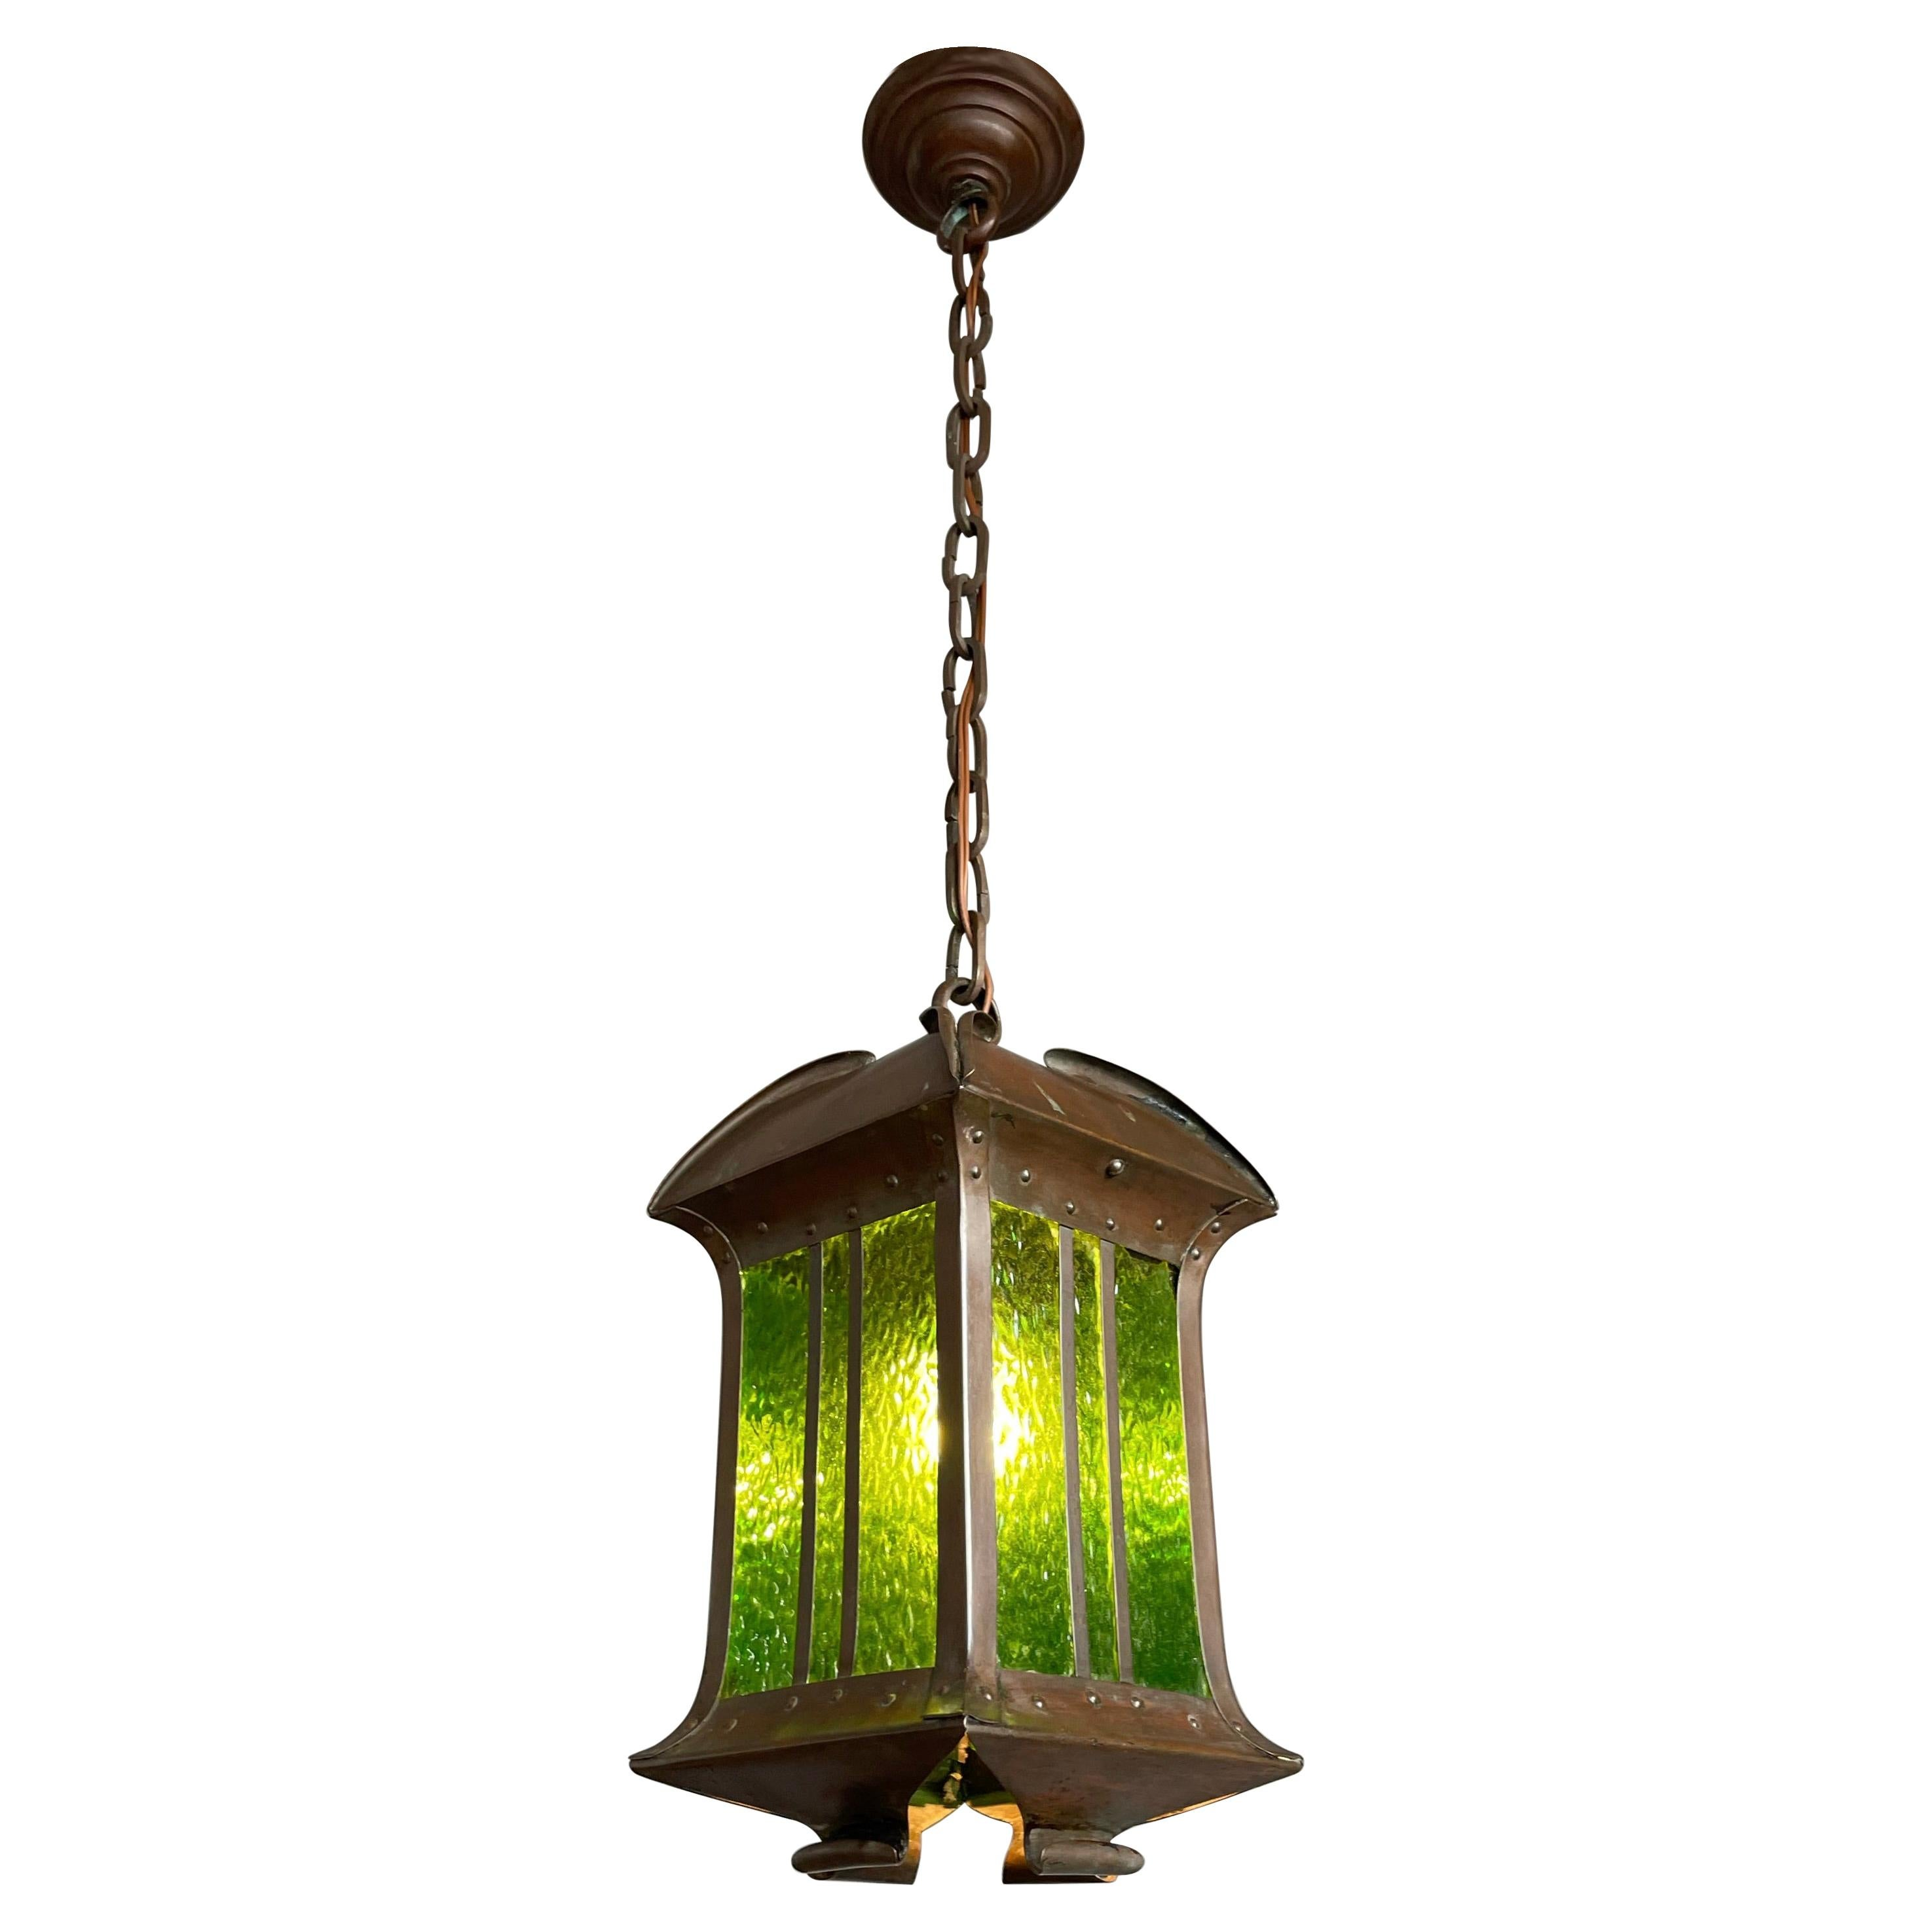 Rare Arts & Crafts Pendant Light / Lantern Patinated Copper & Cathedral Glass